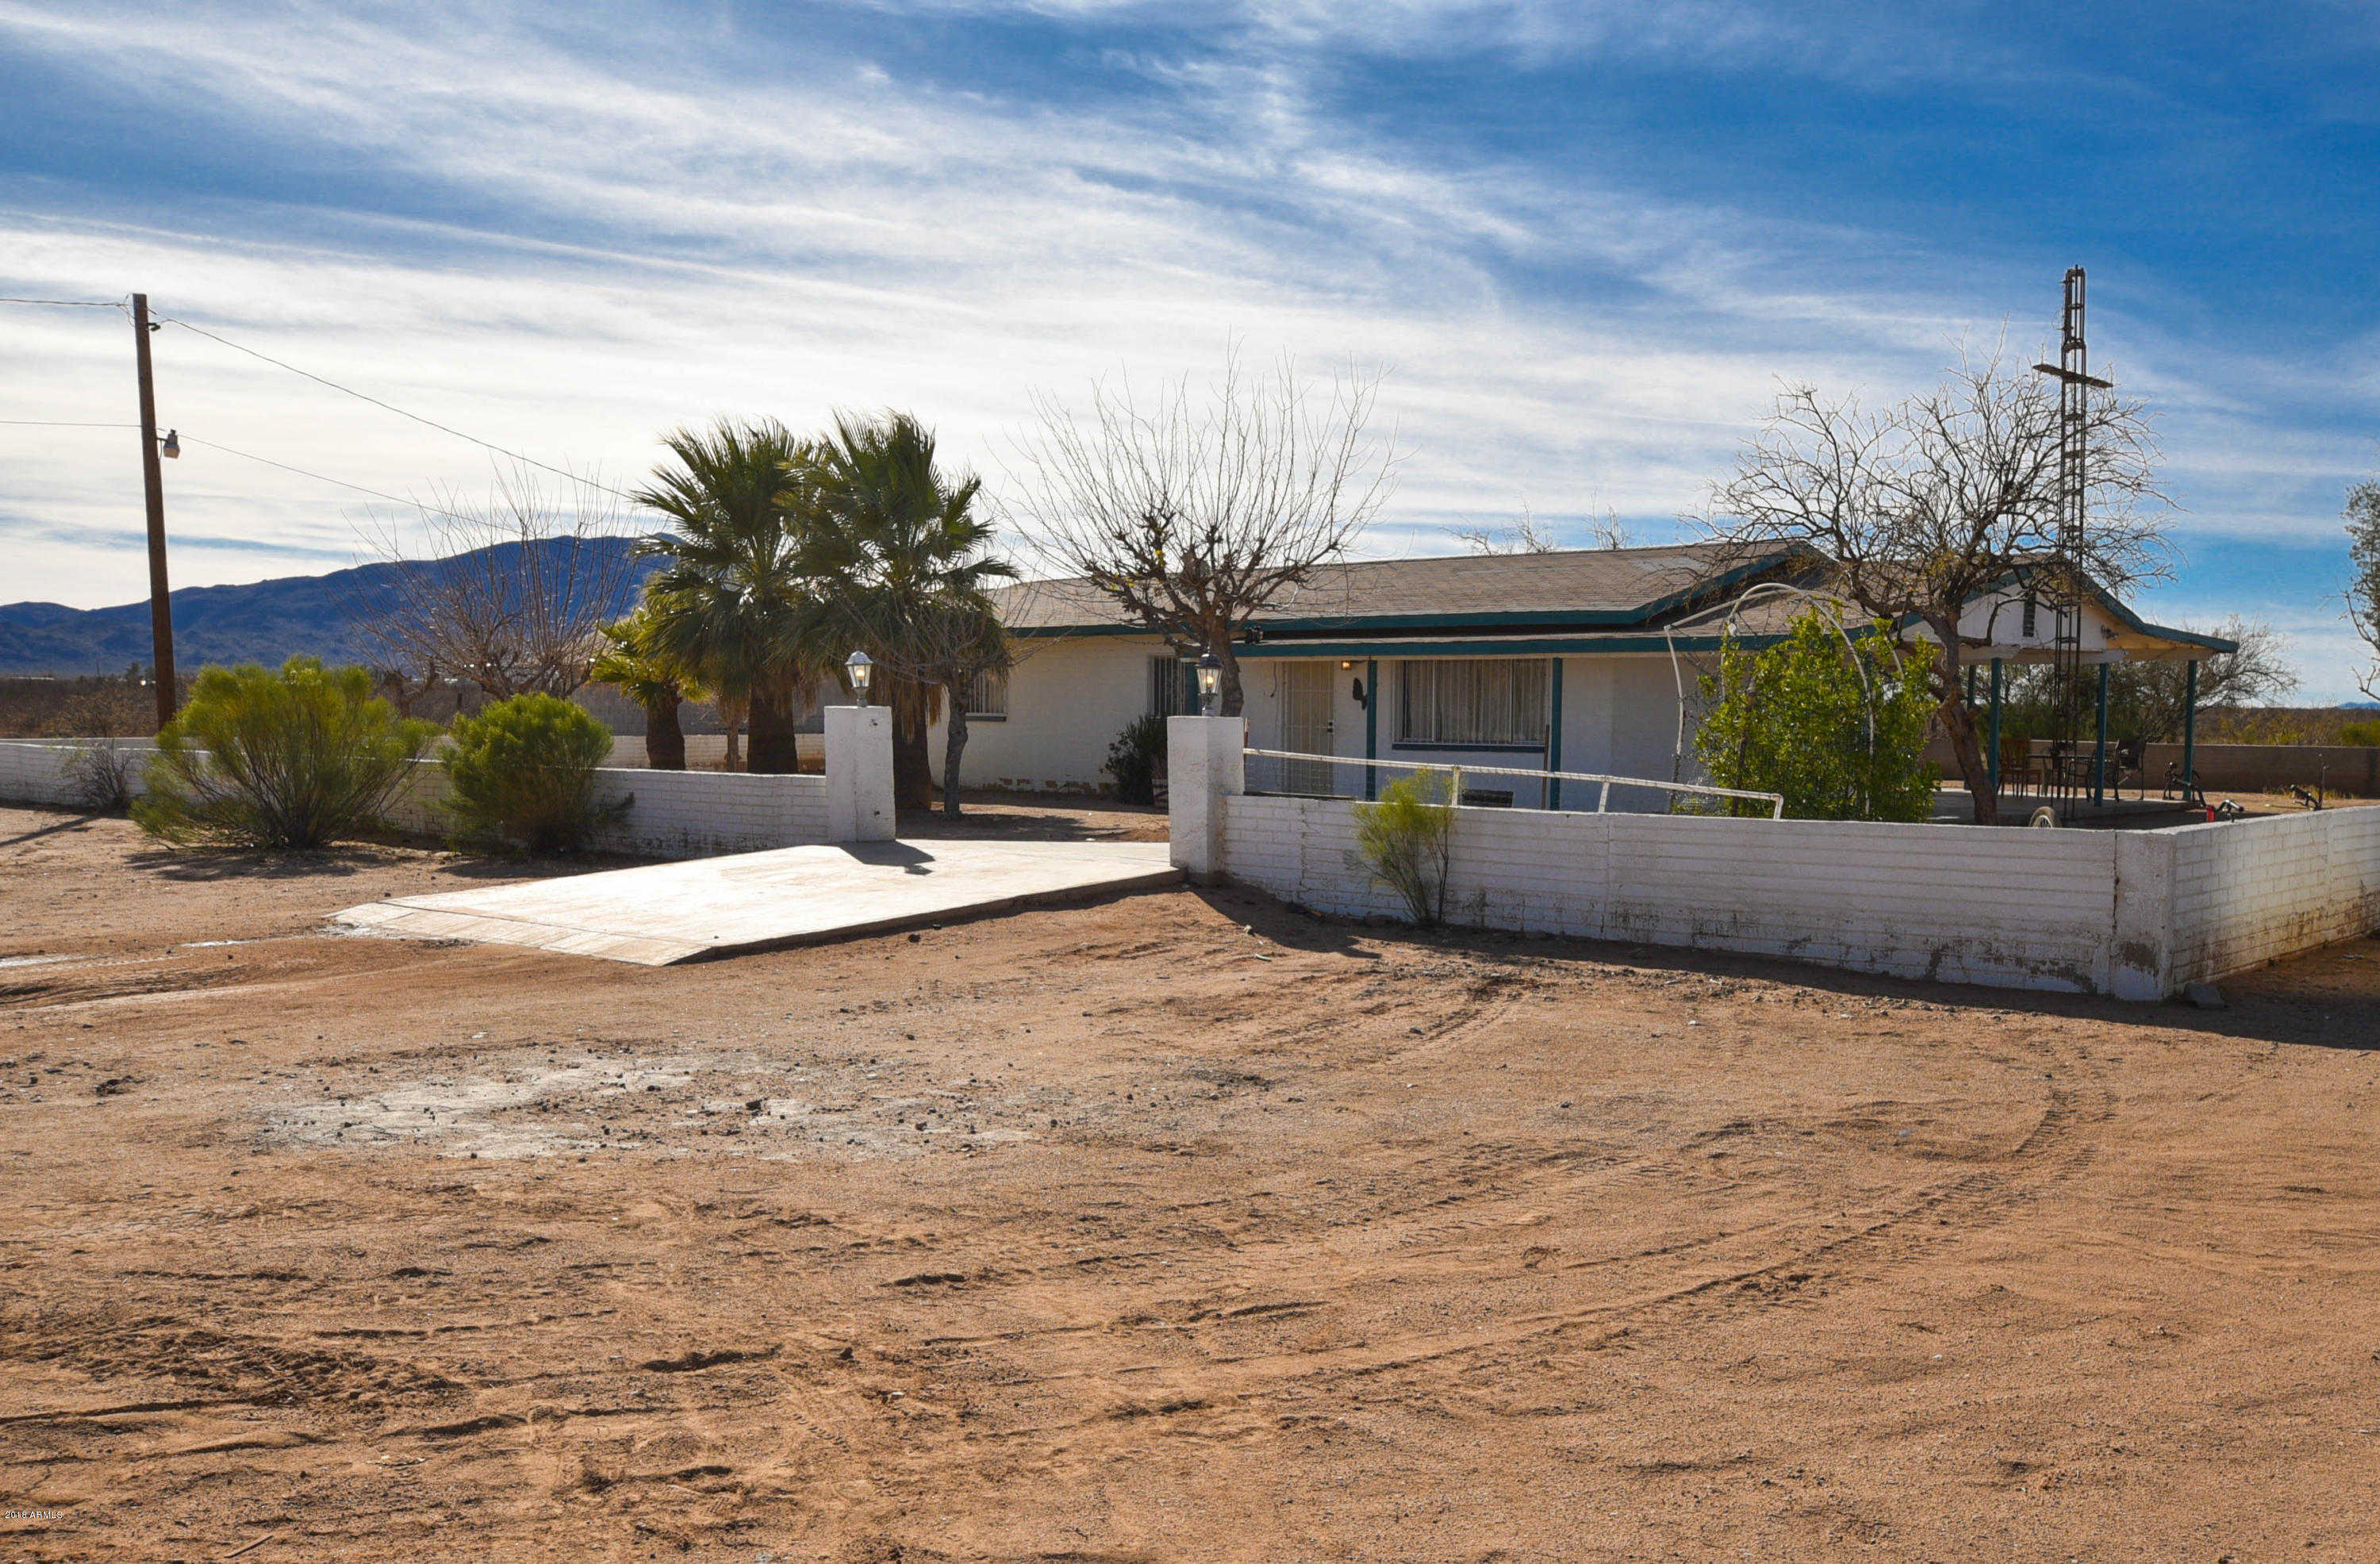 $199,999 - 4Br/2Ba - Home for Sale in N/a, Aguila